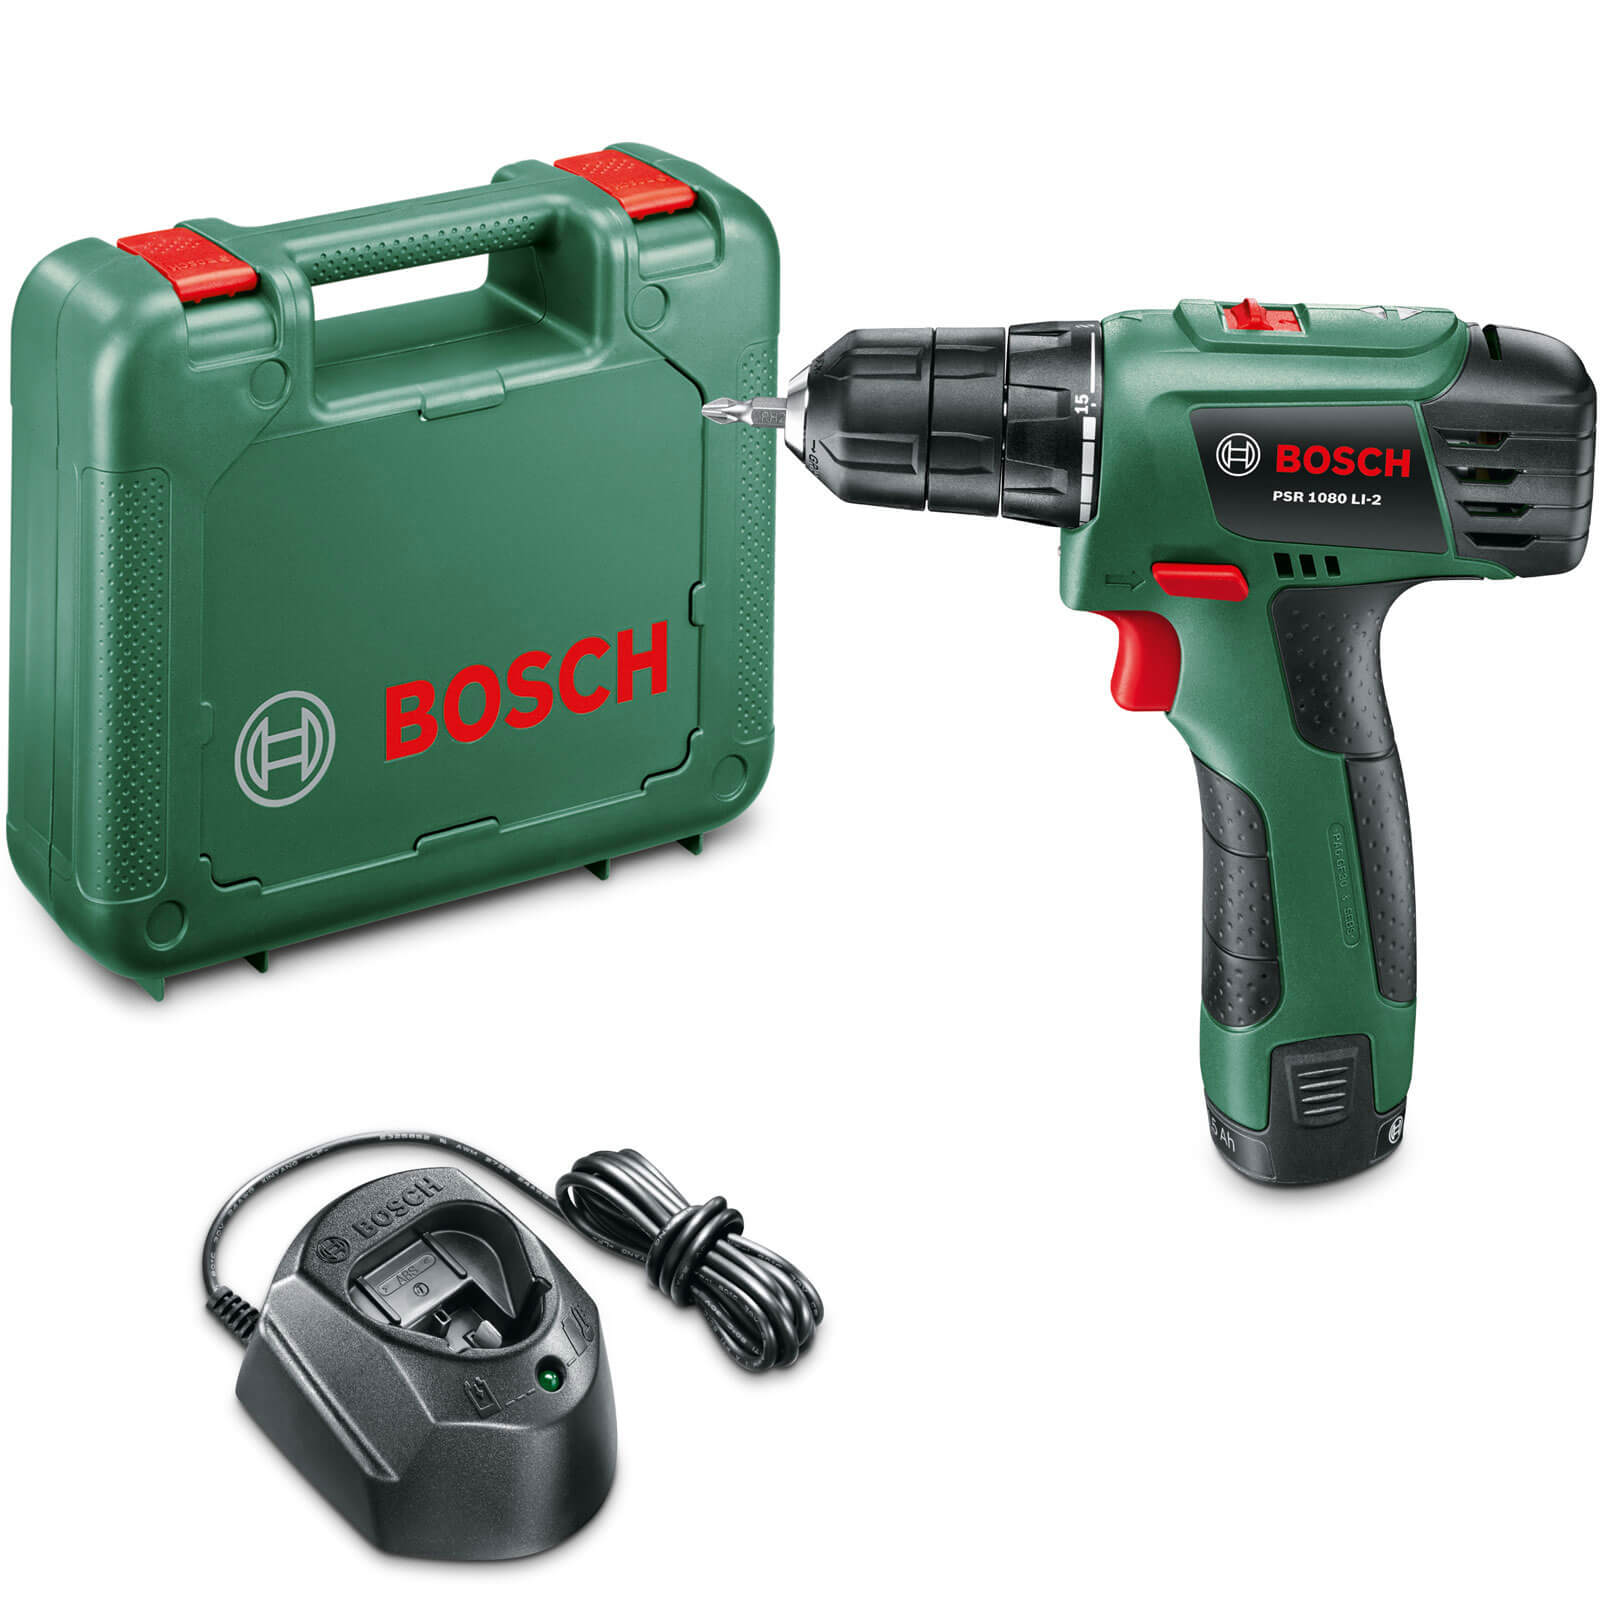 Bosch POWER4ALL PSR 10.8 LI-2 10.8v Cordless 2 Speed Drill Driver with 1 Lithium Ion Battery 1.5ah